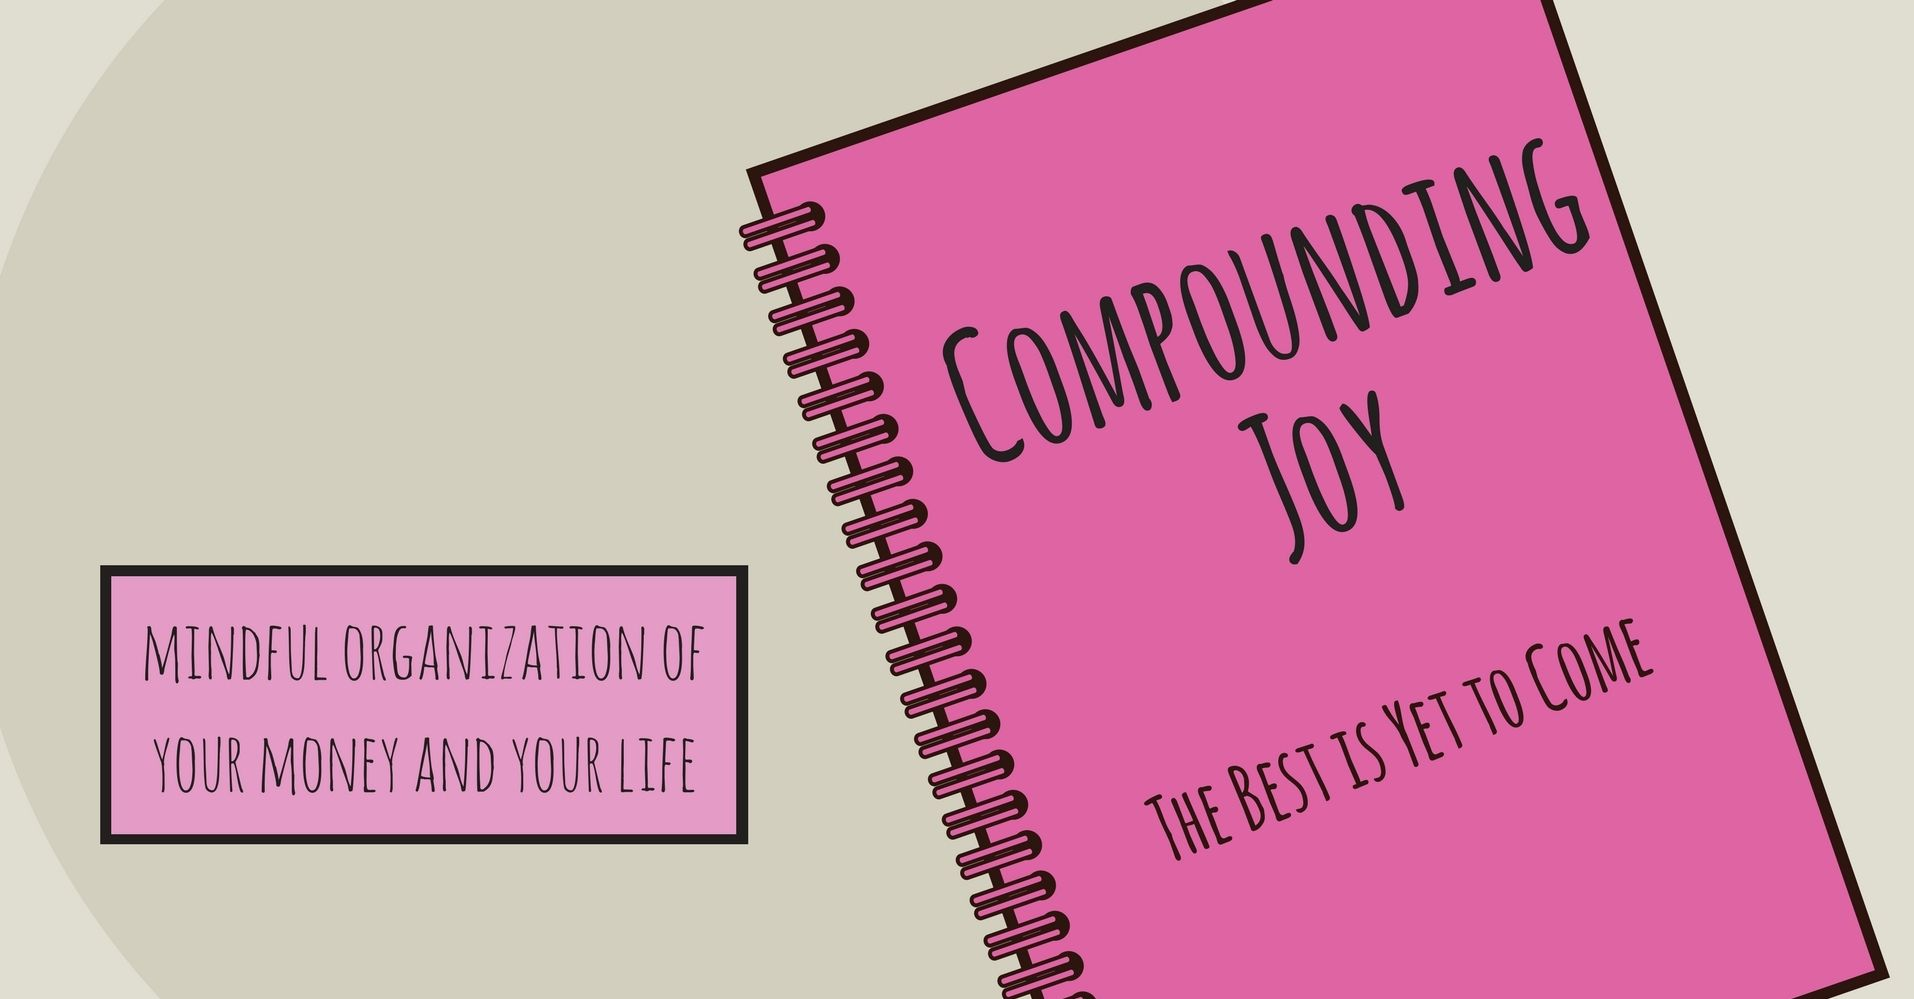 compounding joy - mindful organization of your money and your life